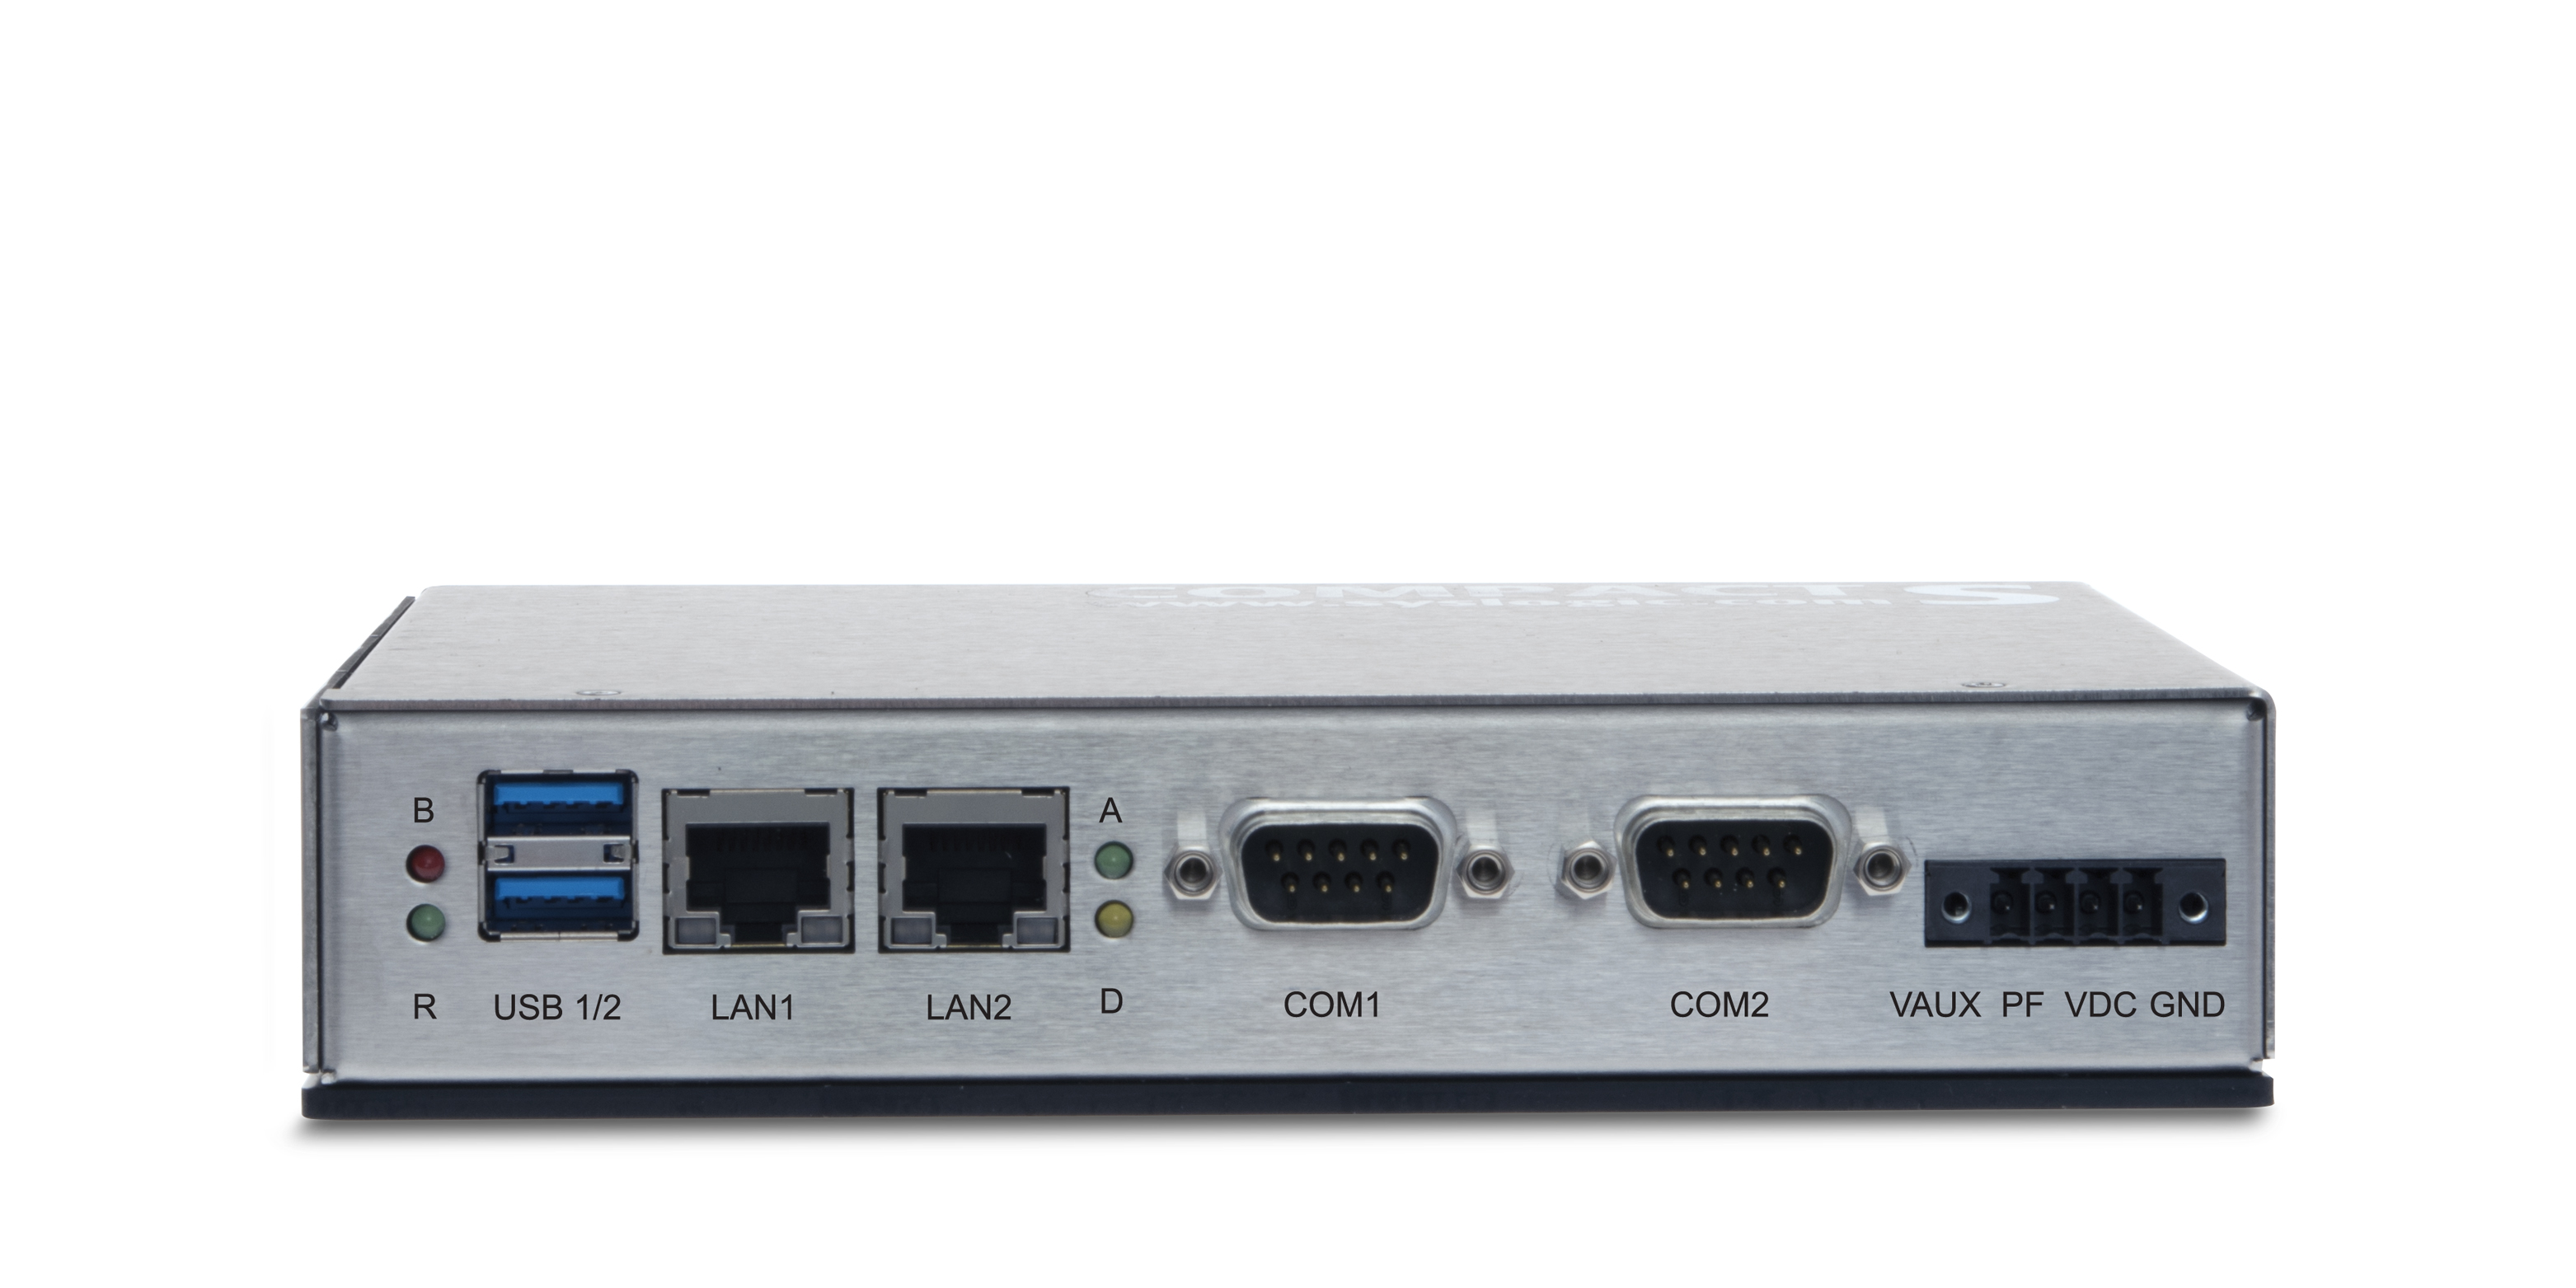 S - Embedded Box PC COMPACT8 Syslogic